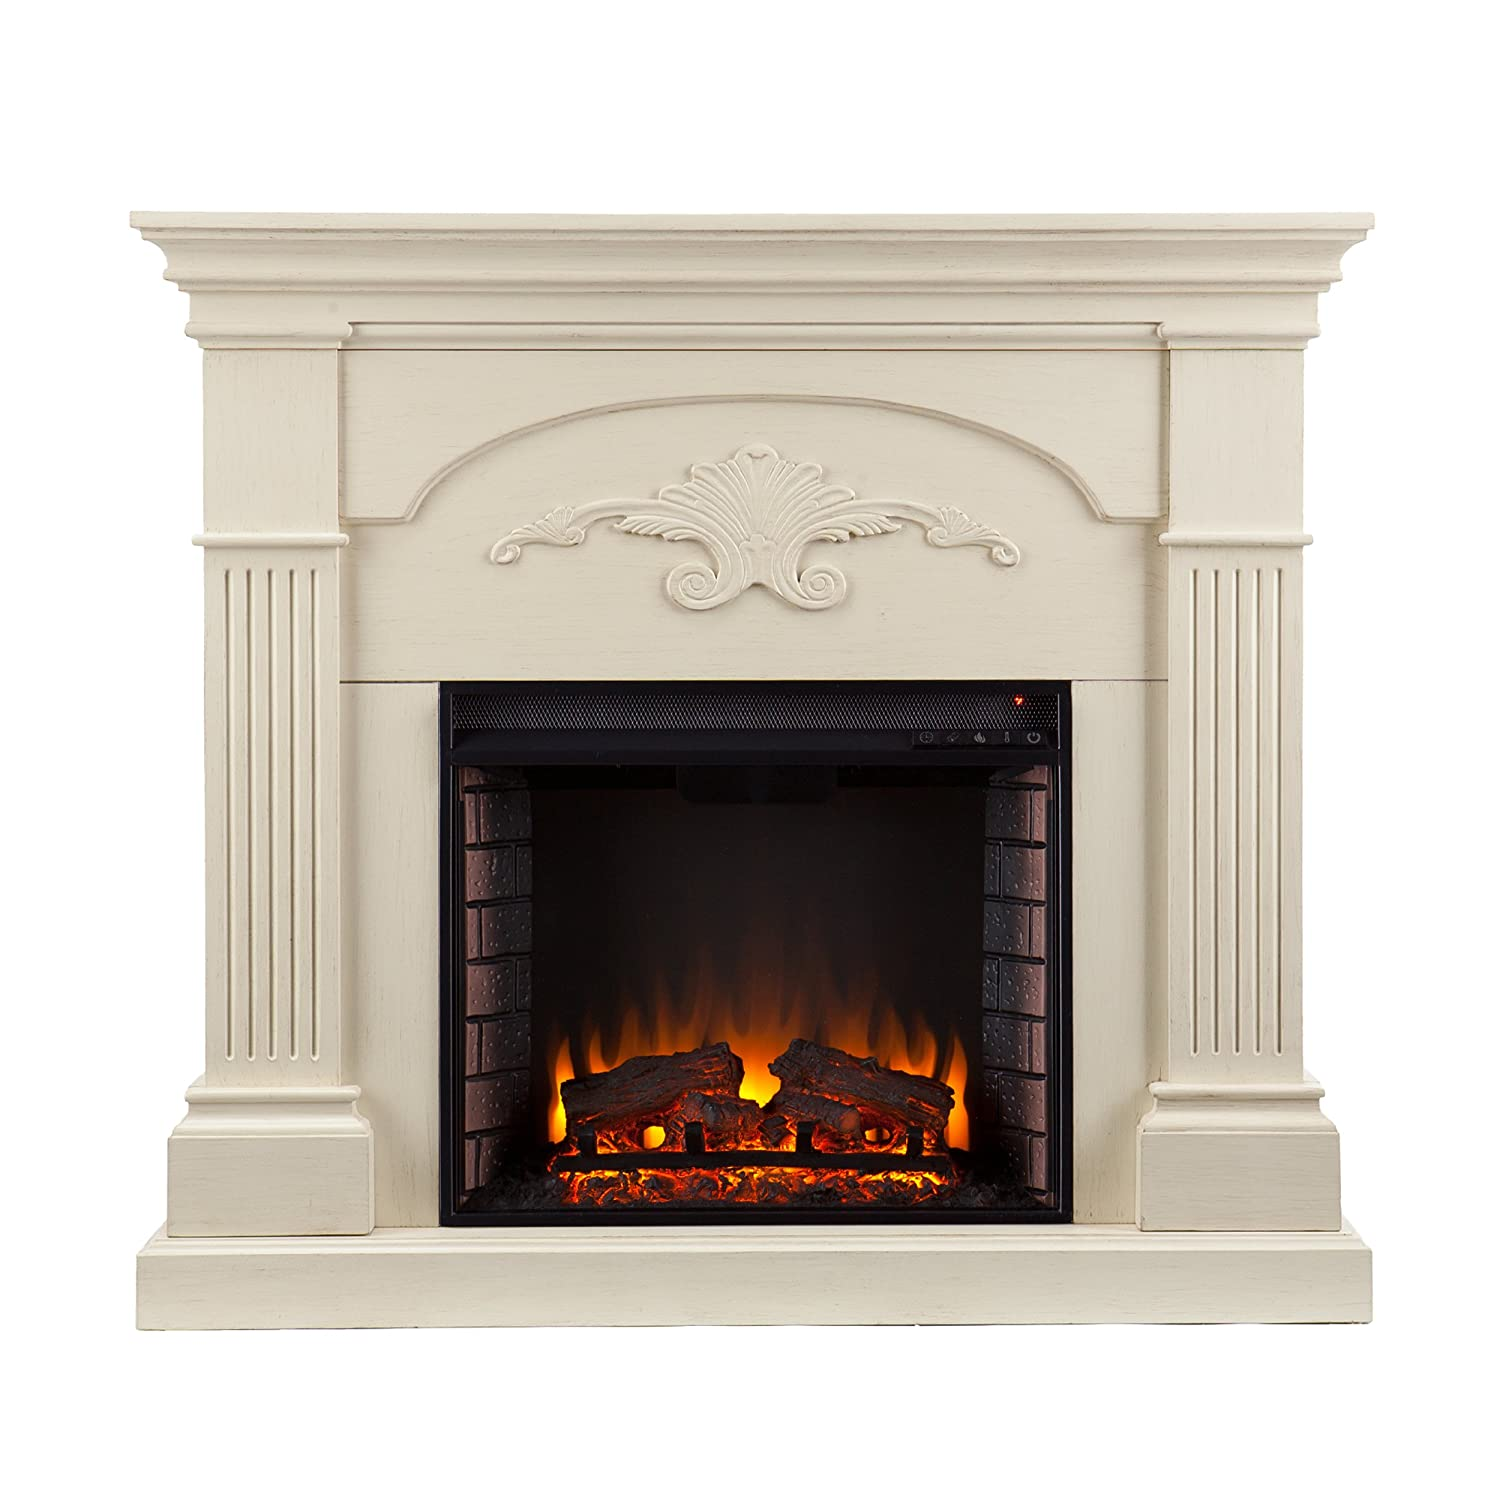 Southern Enterprises Sicilian Harvest Electric Mantel Fireplace -Radiant Heat Space Heater – Ivory Finish